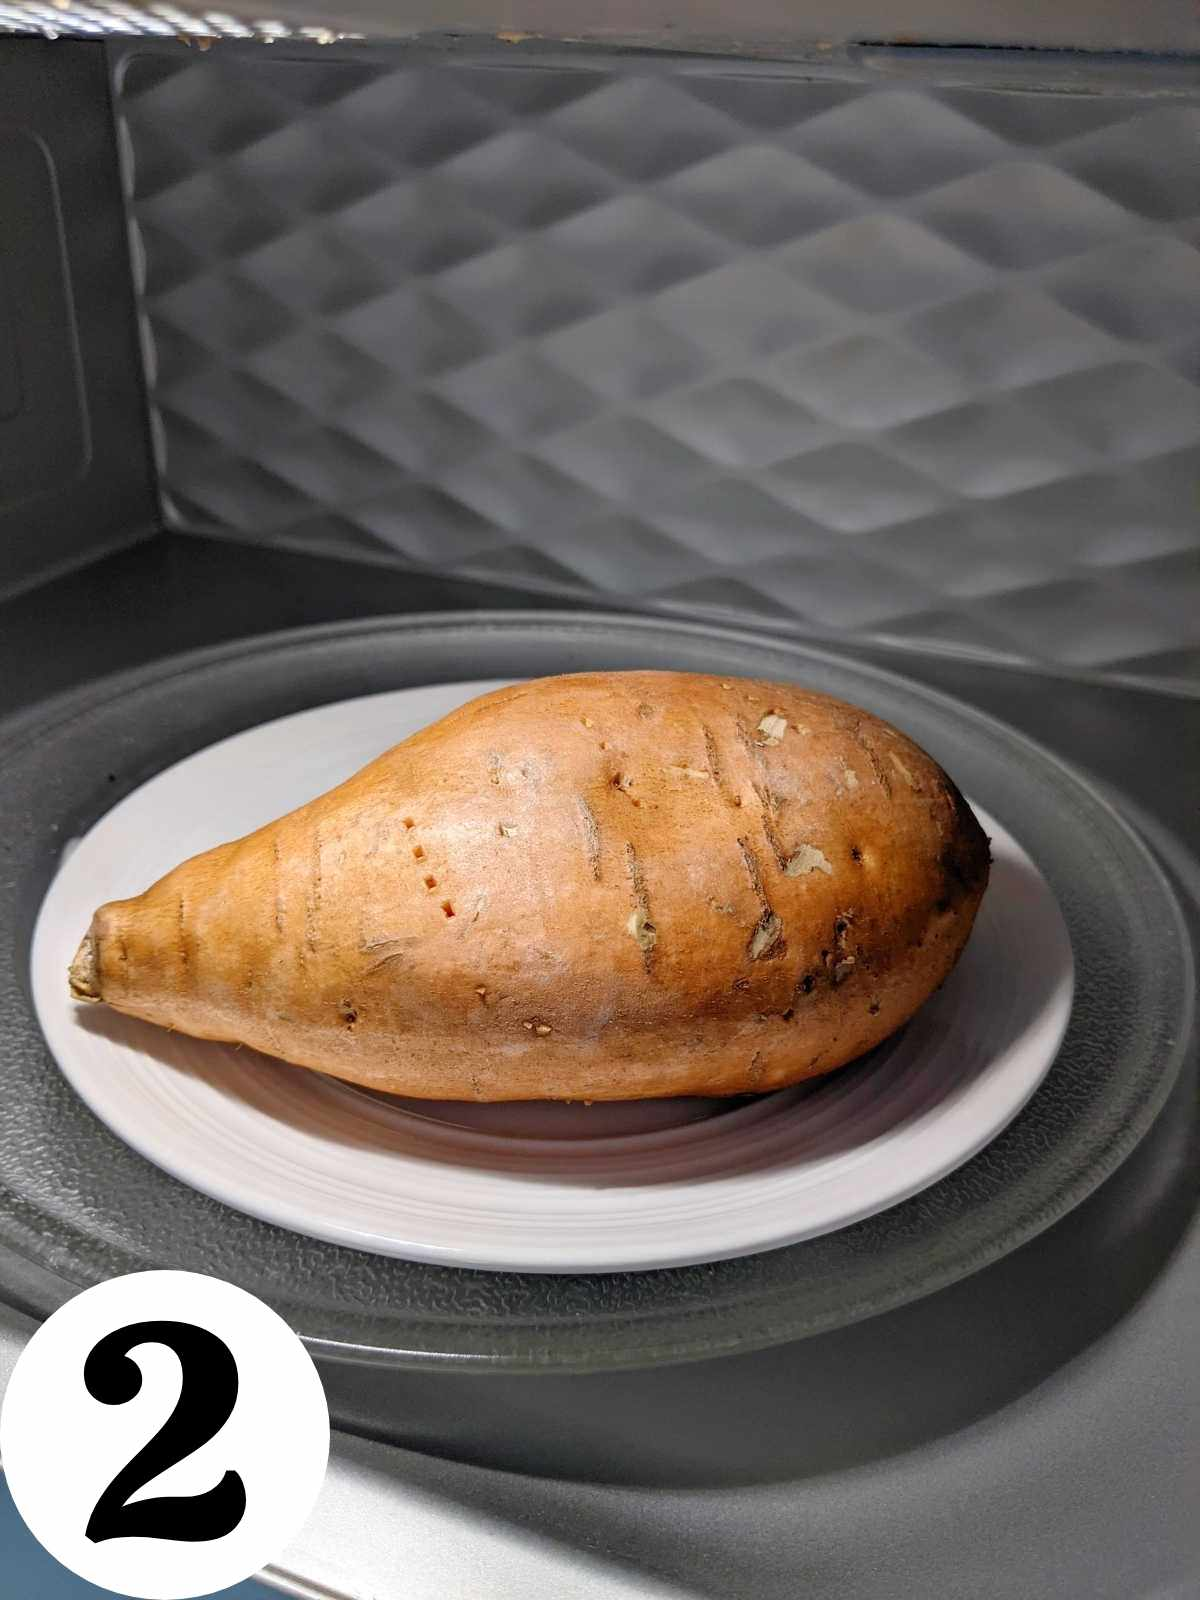 A prepared sweet potato on a plate in the microwave.